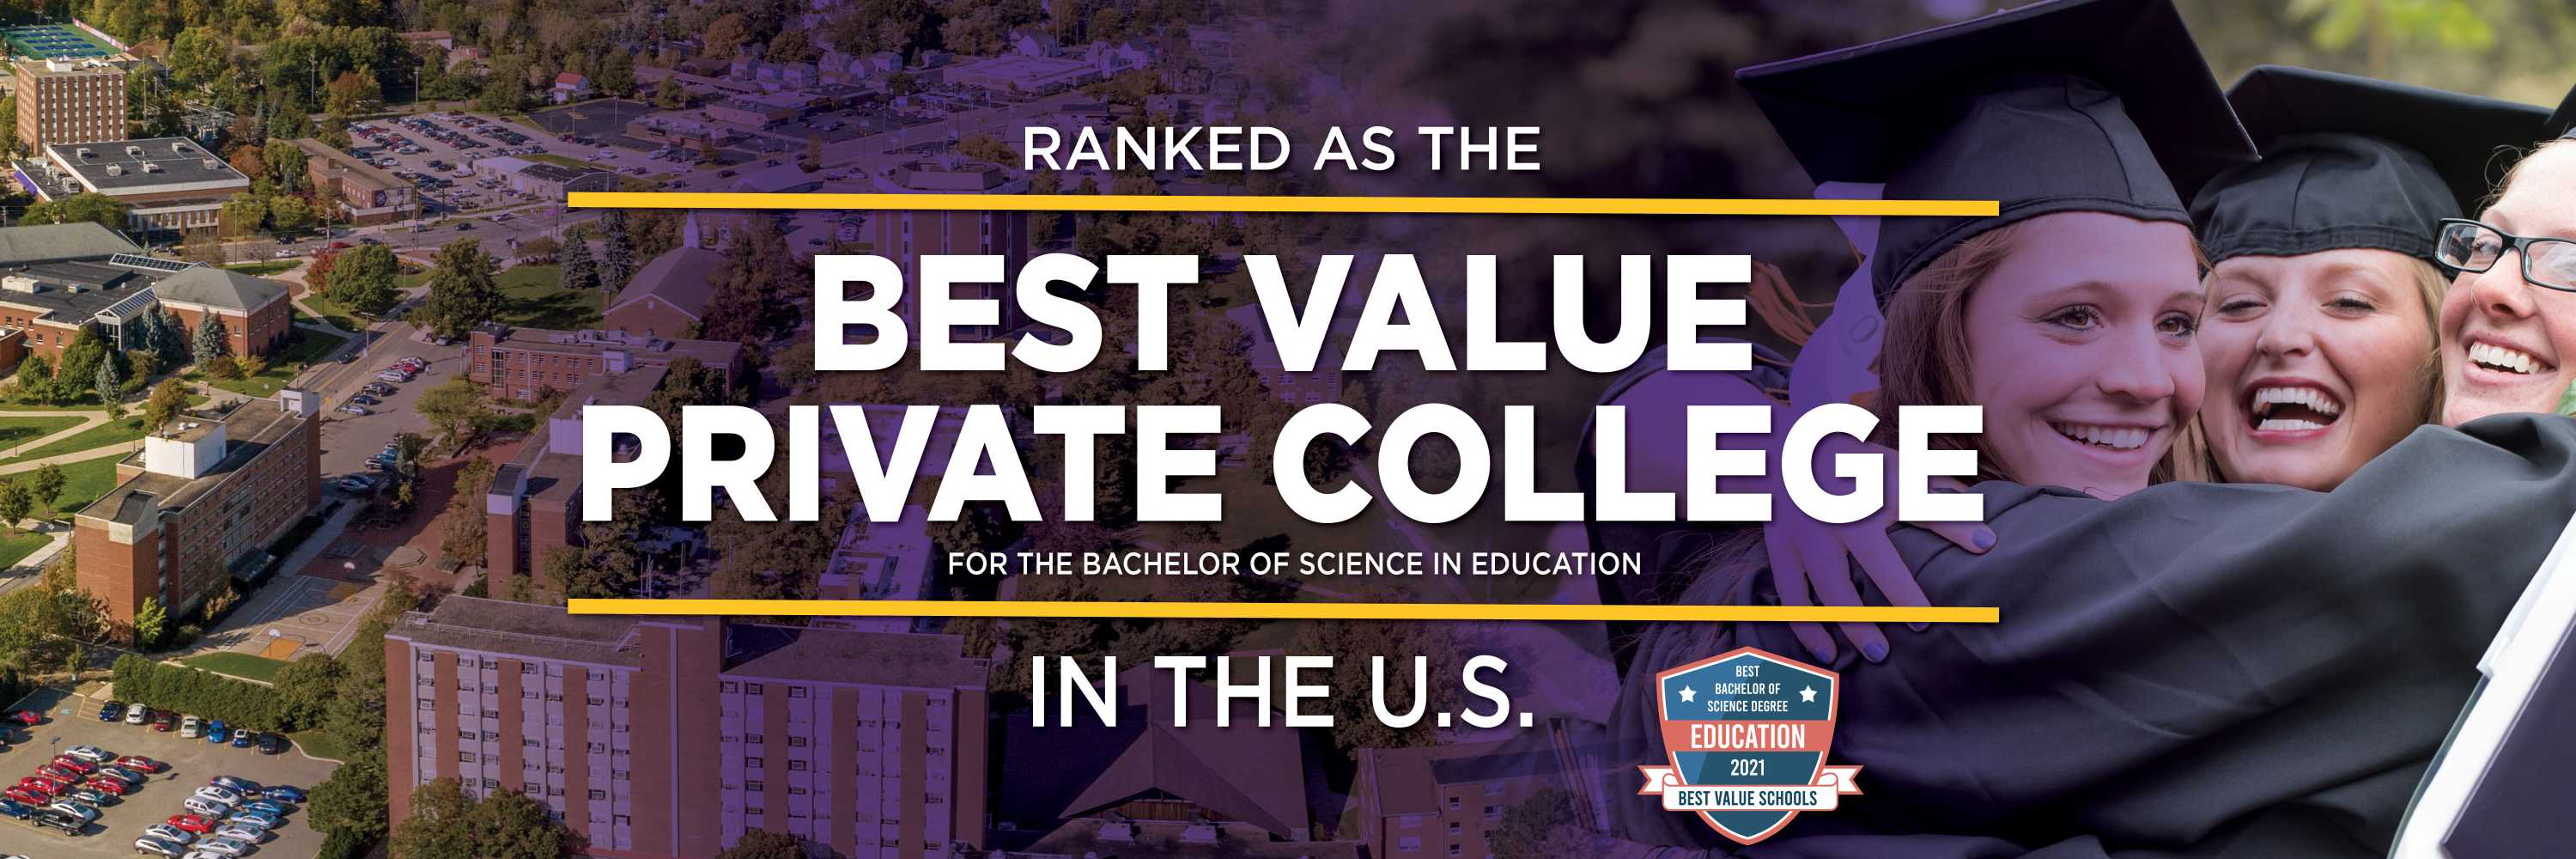 Ashland University ranked as the best value private college in the U.S. for the B.S. in Education